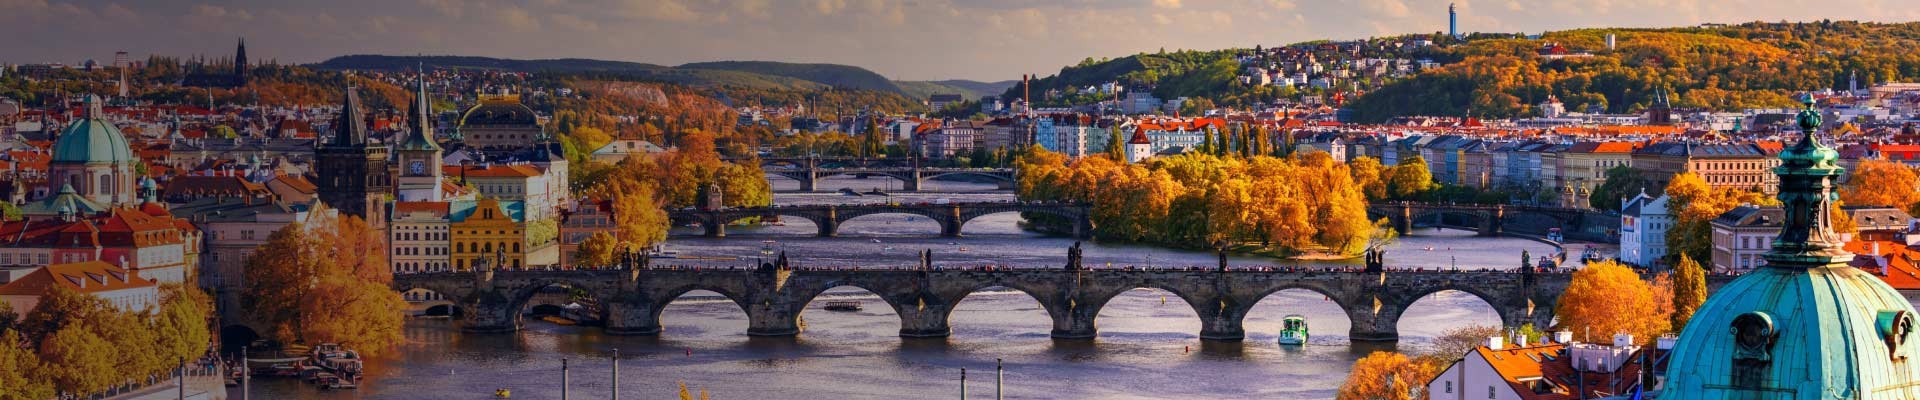 Aerial view of Prague, Czech Republic in the Fall. Trees with orange colored leaves line either side of the Vltava River.